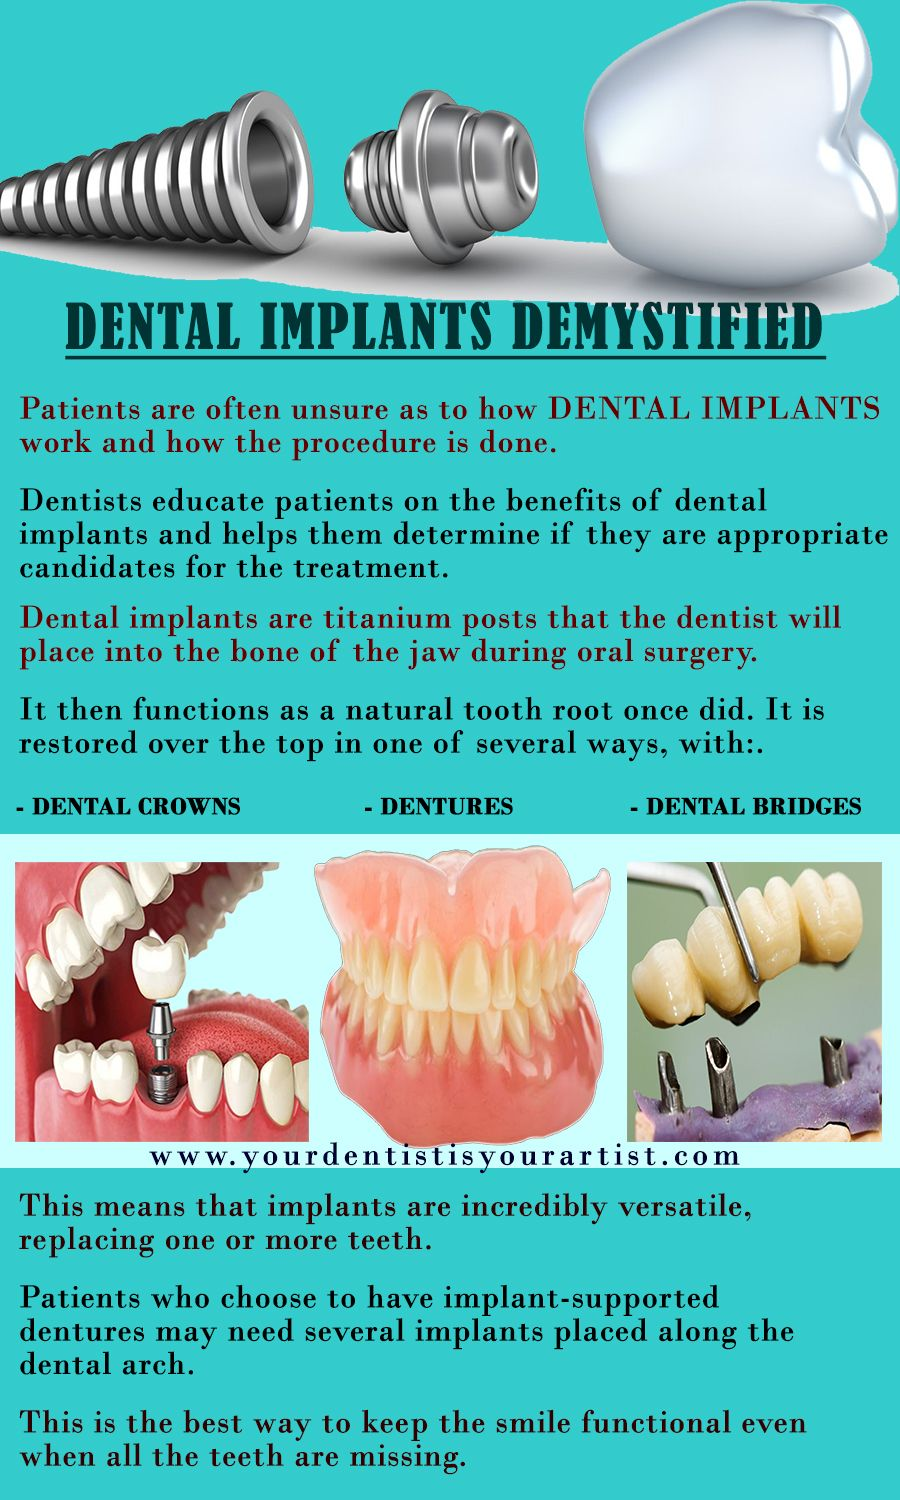 If you are interested in visiting a dentist near me in